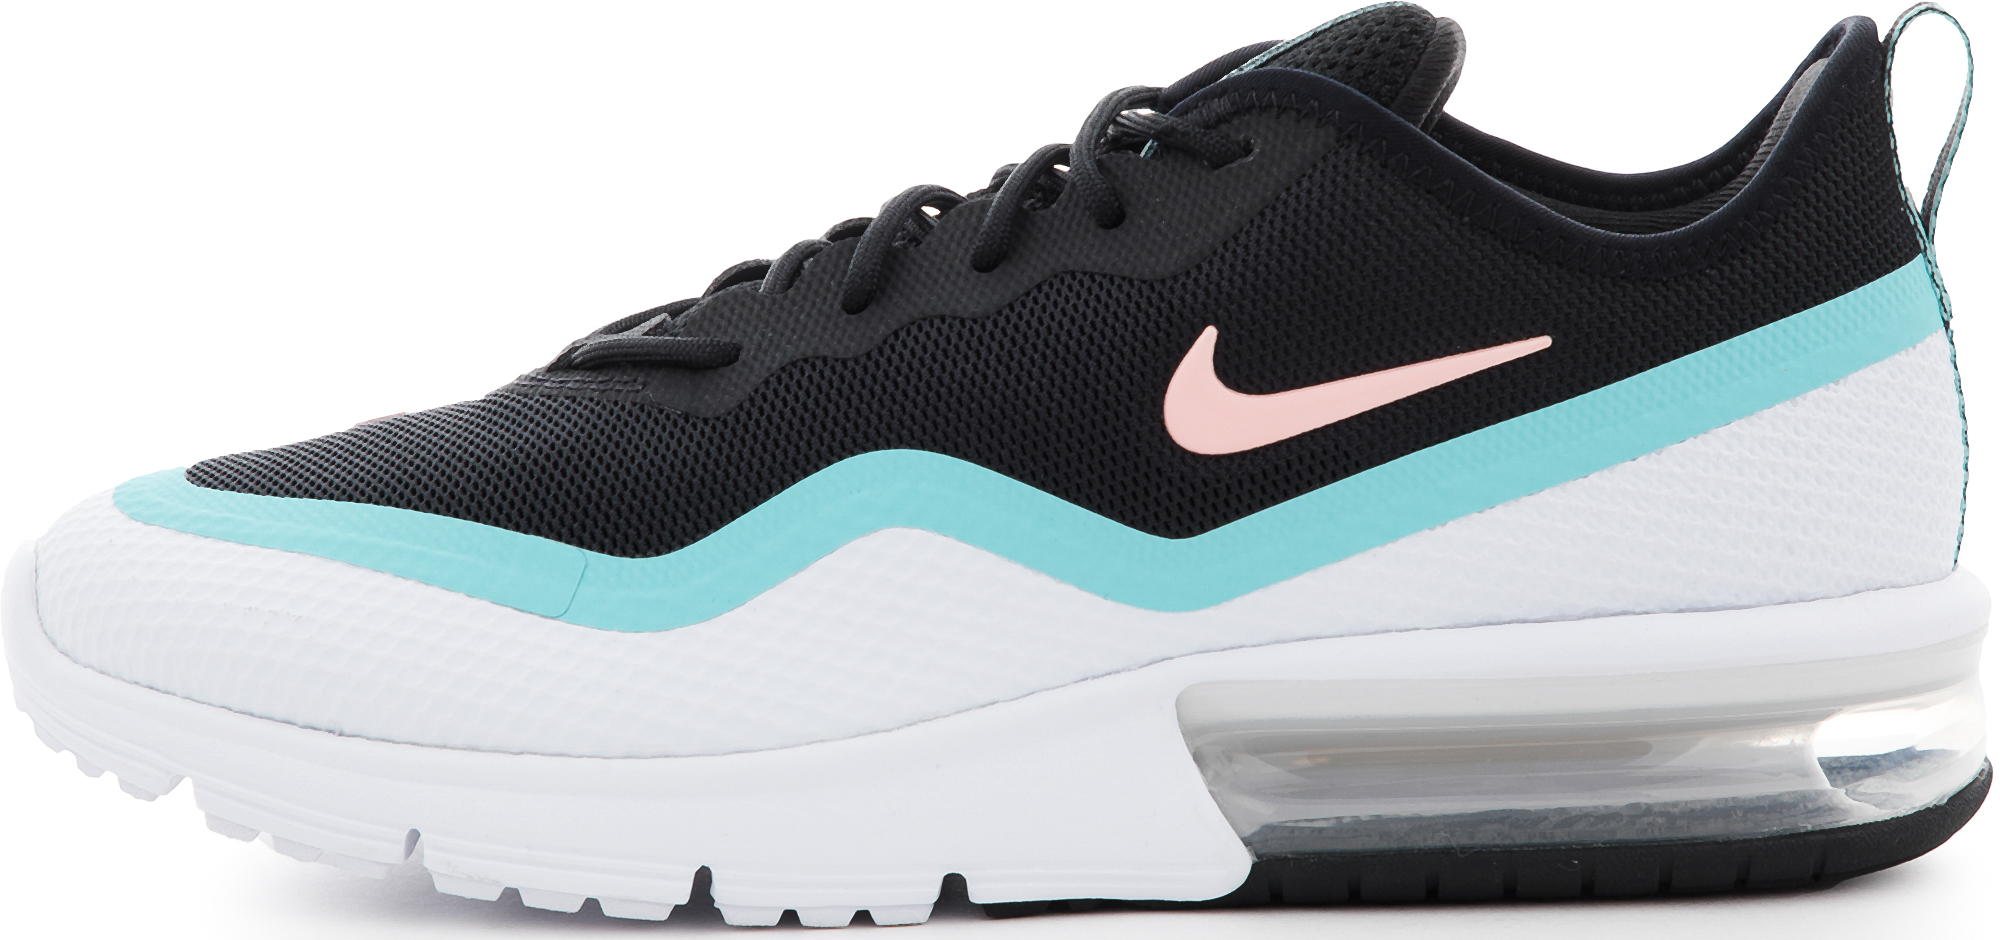 Nike Кроссовки женские Nike Air Max Sequent 4.5, размер 39 nike кроссовки женские nike tanjun racer размер 39 5